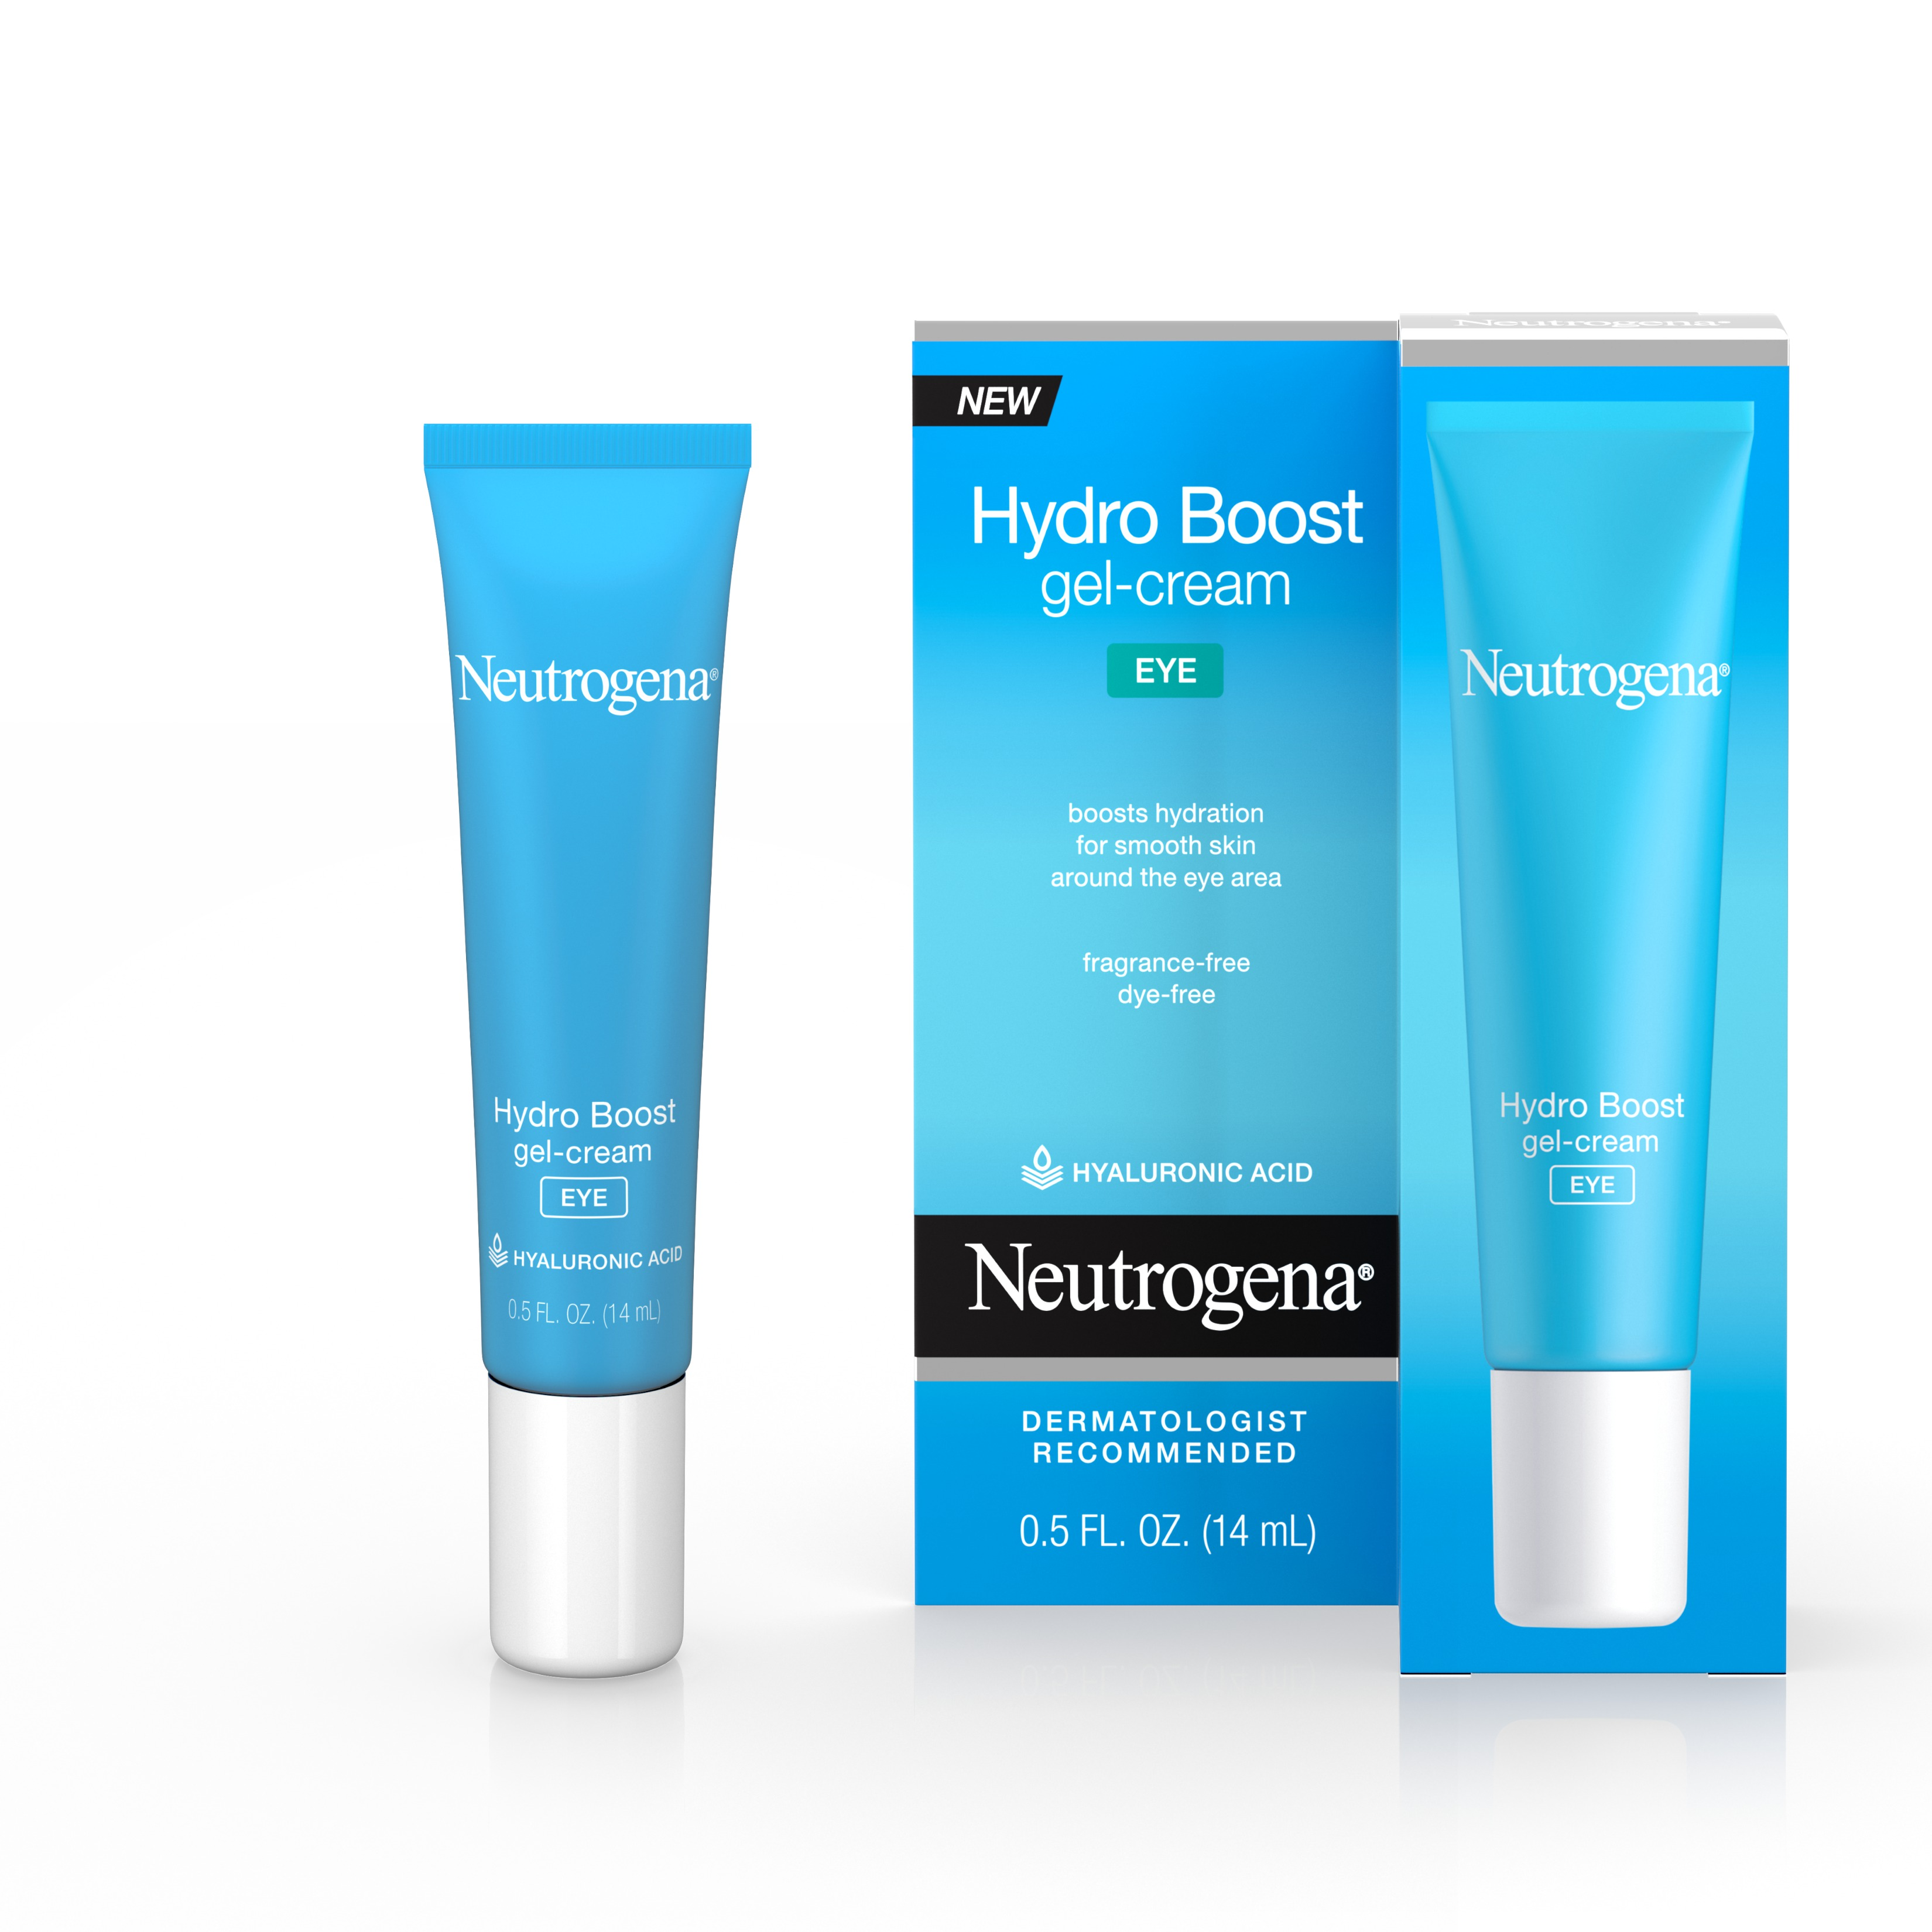 Neutrogena Hydro Boost Hyaluronic Acid Gel Eye Cream, 0.5 fl. oz